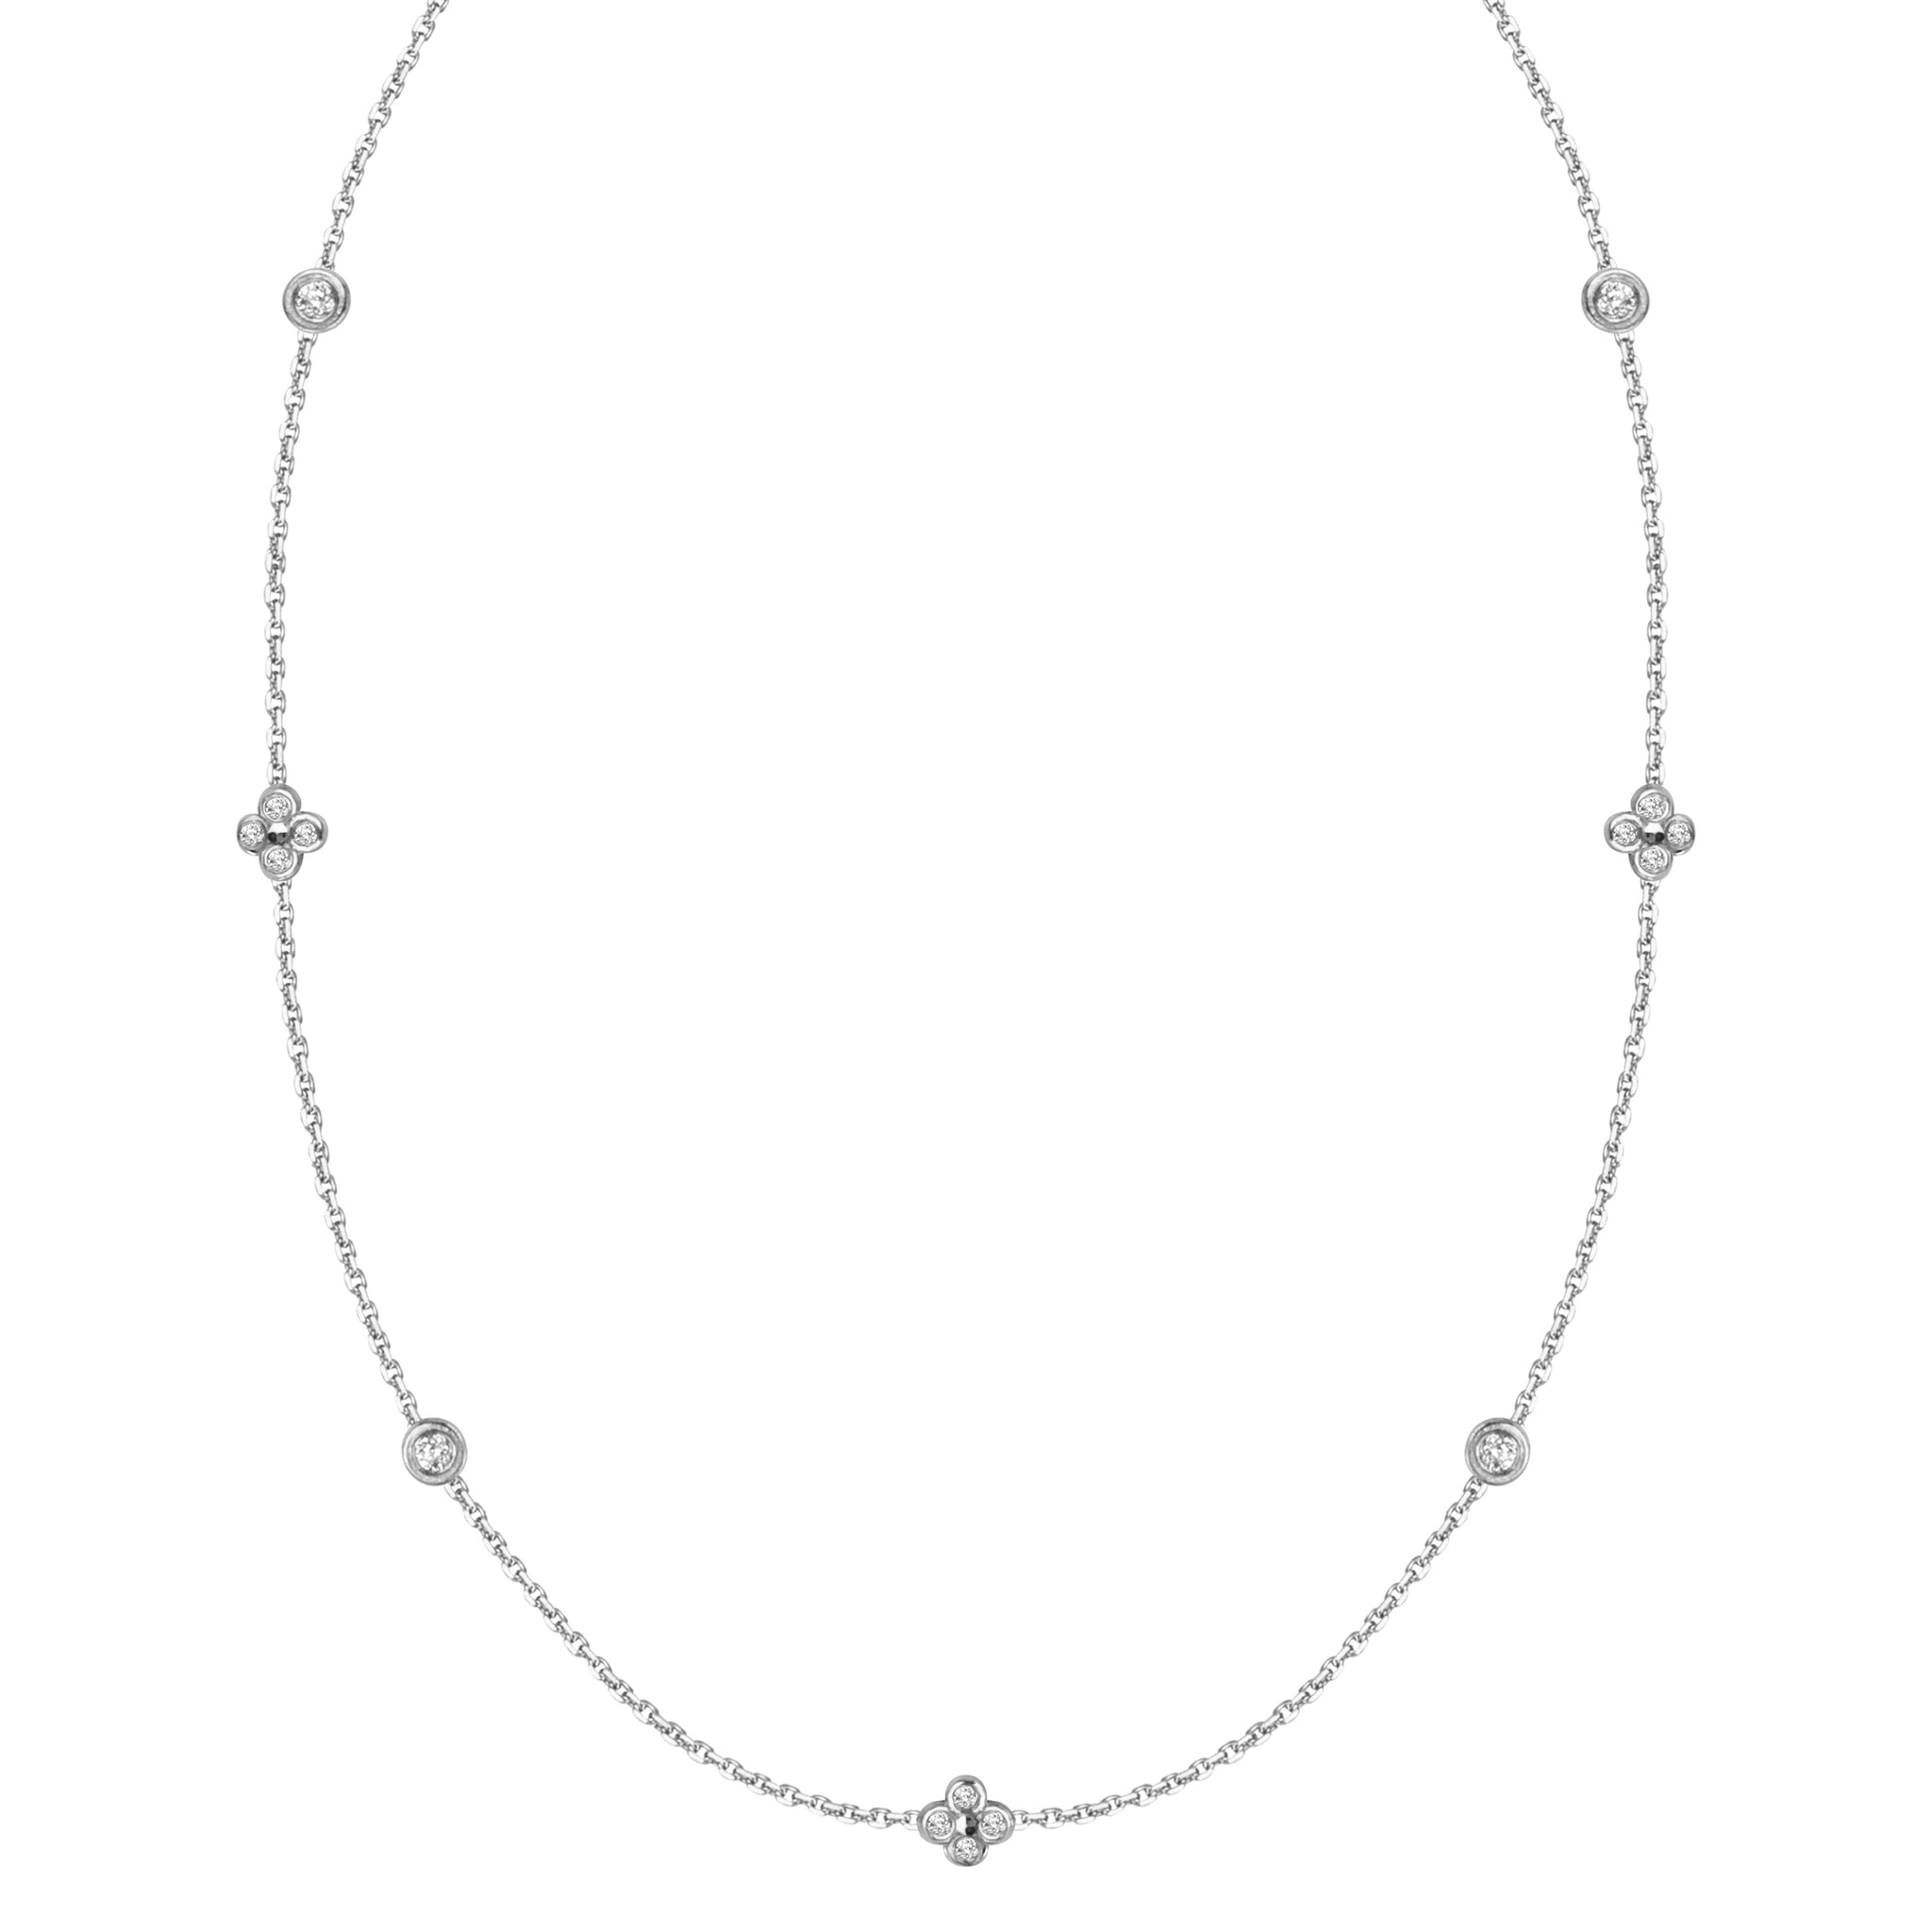 Floating Cluster Diamond Necklace